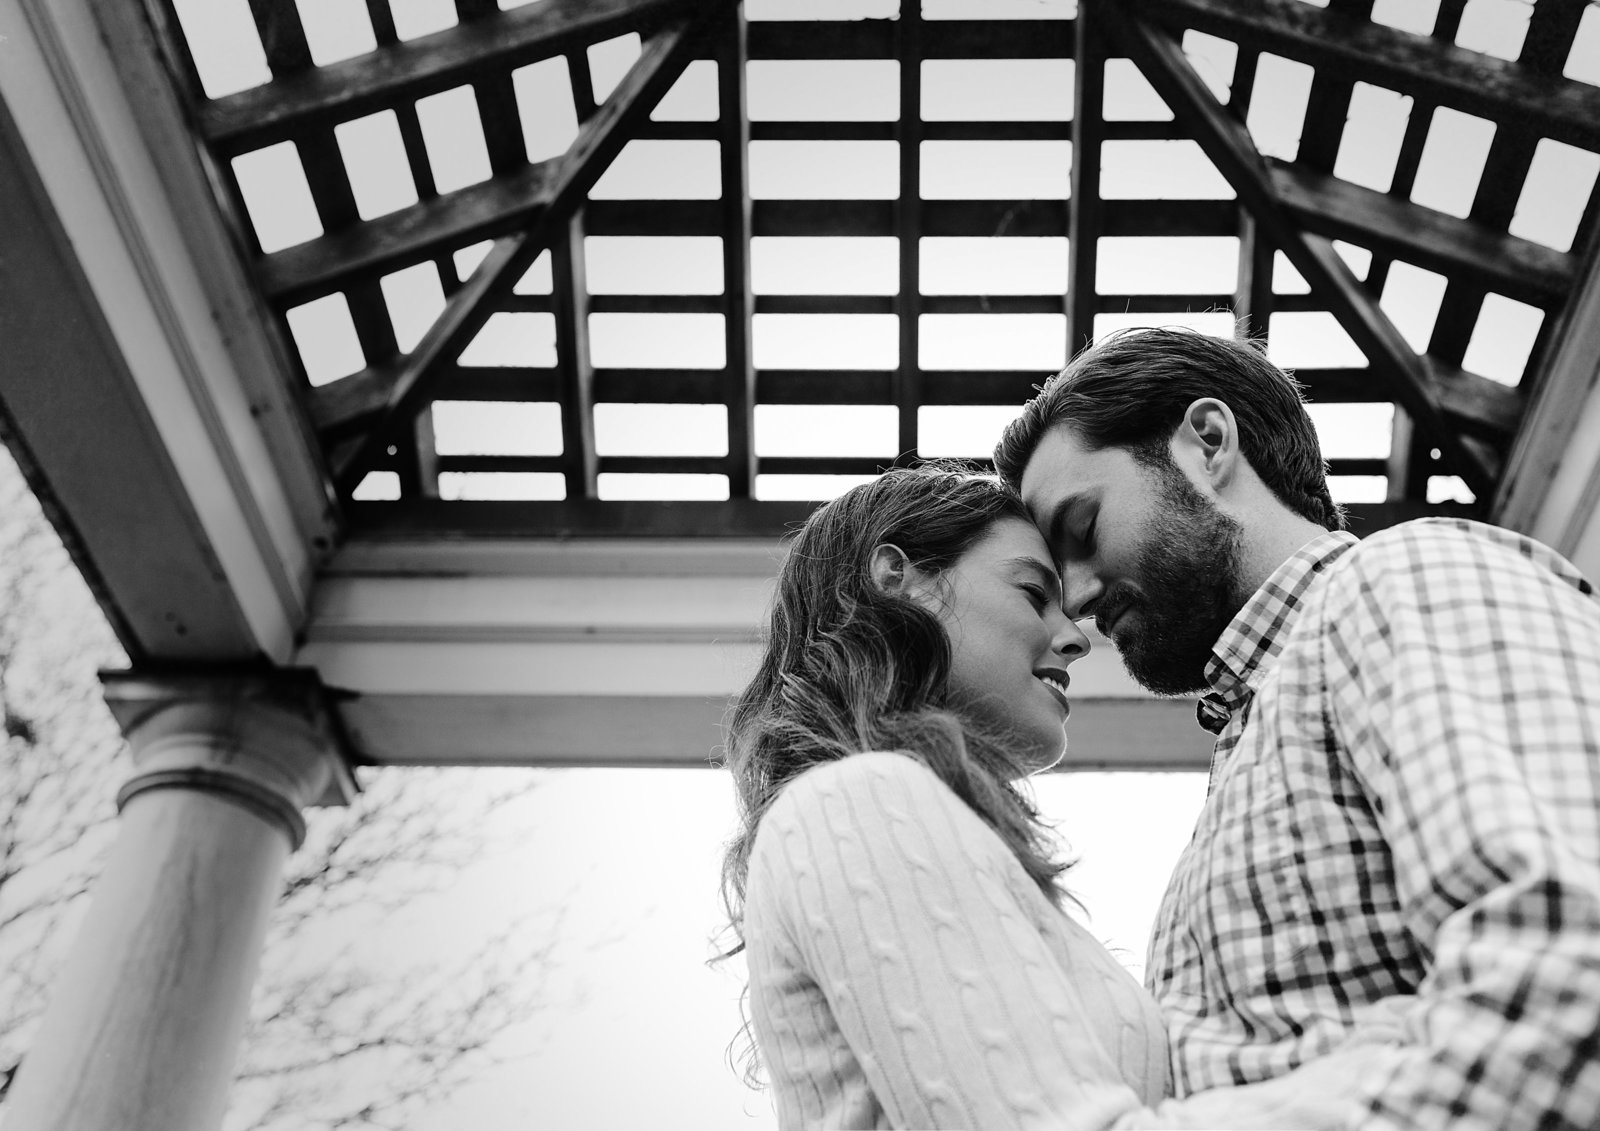 Charlotte engagement photographer creates a beautiful black and white with an engaged couple under a gazebo